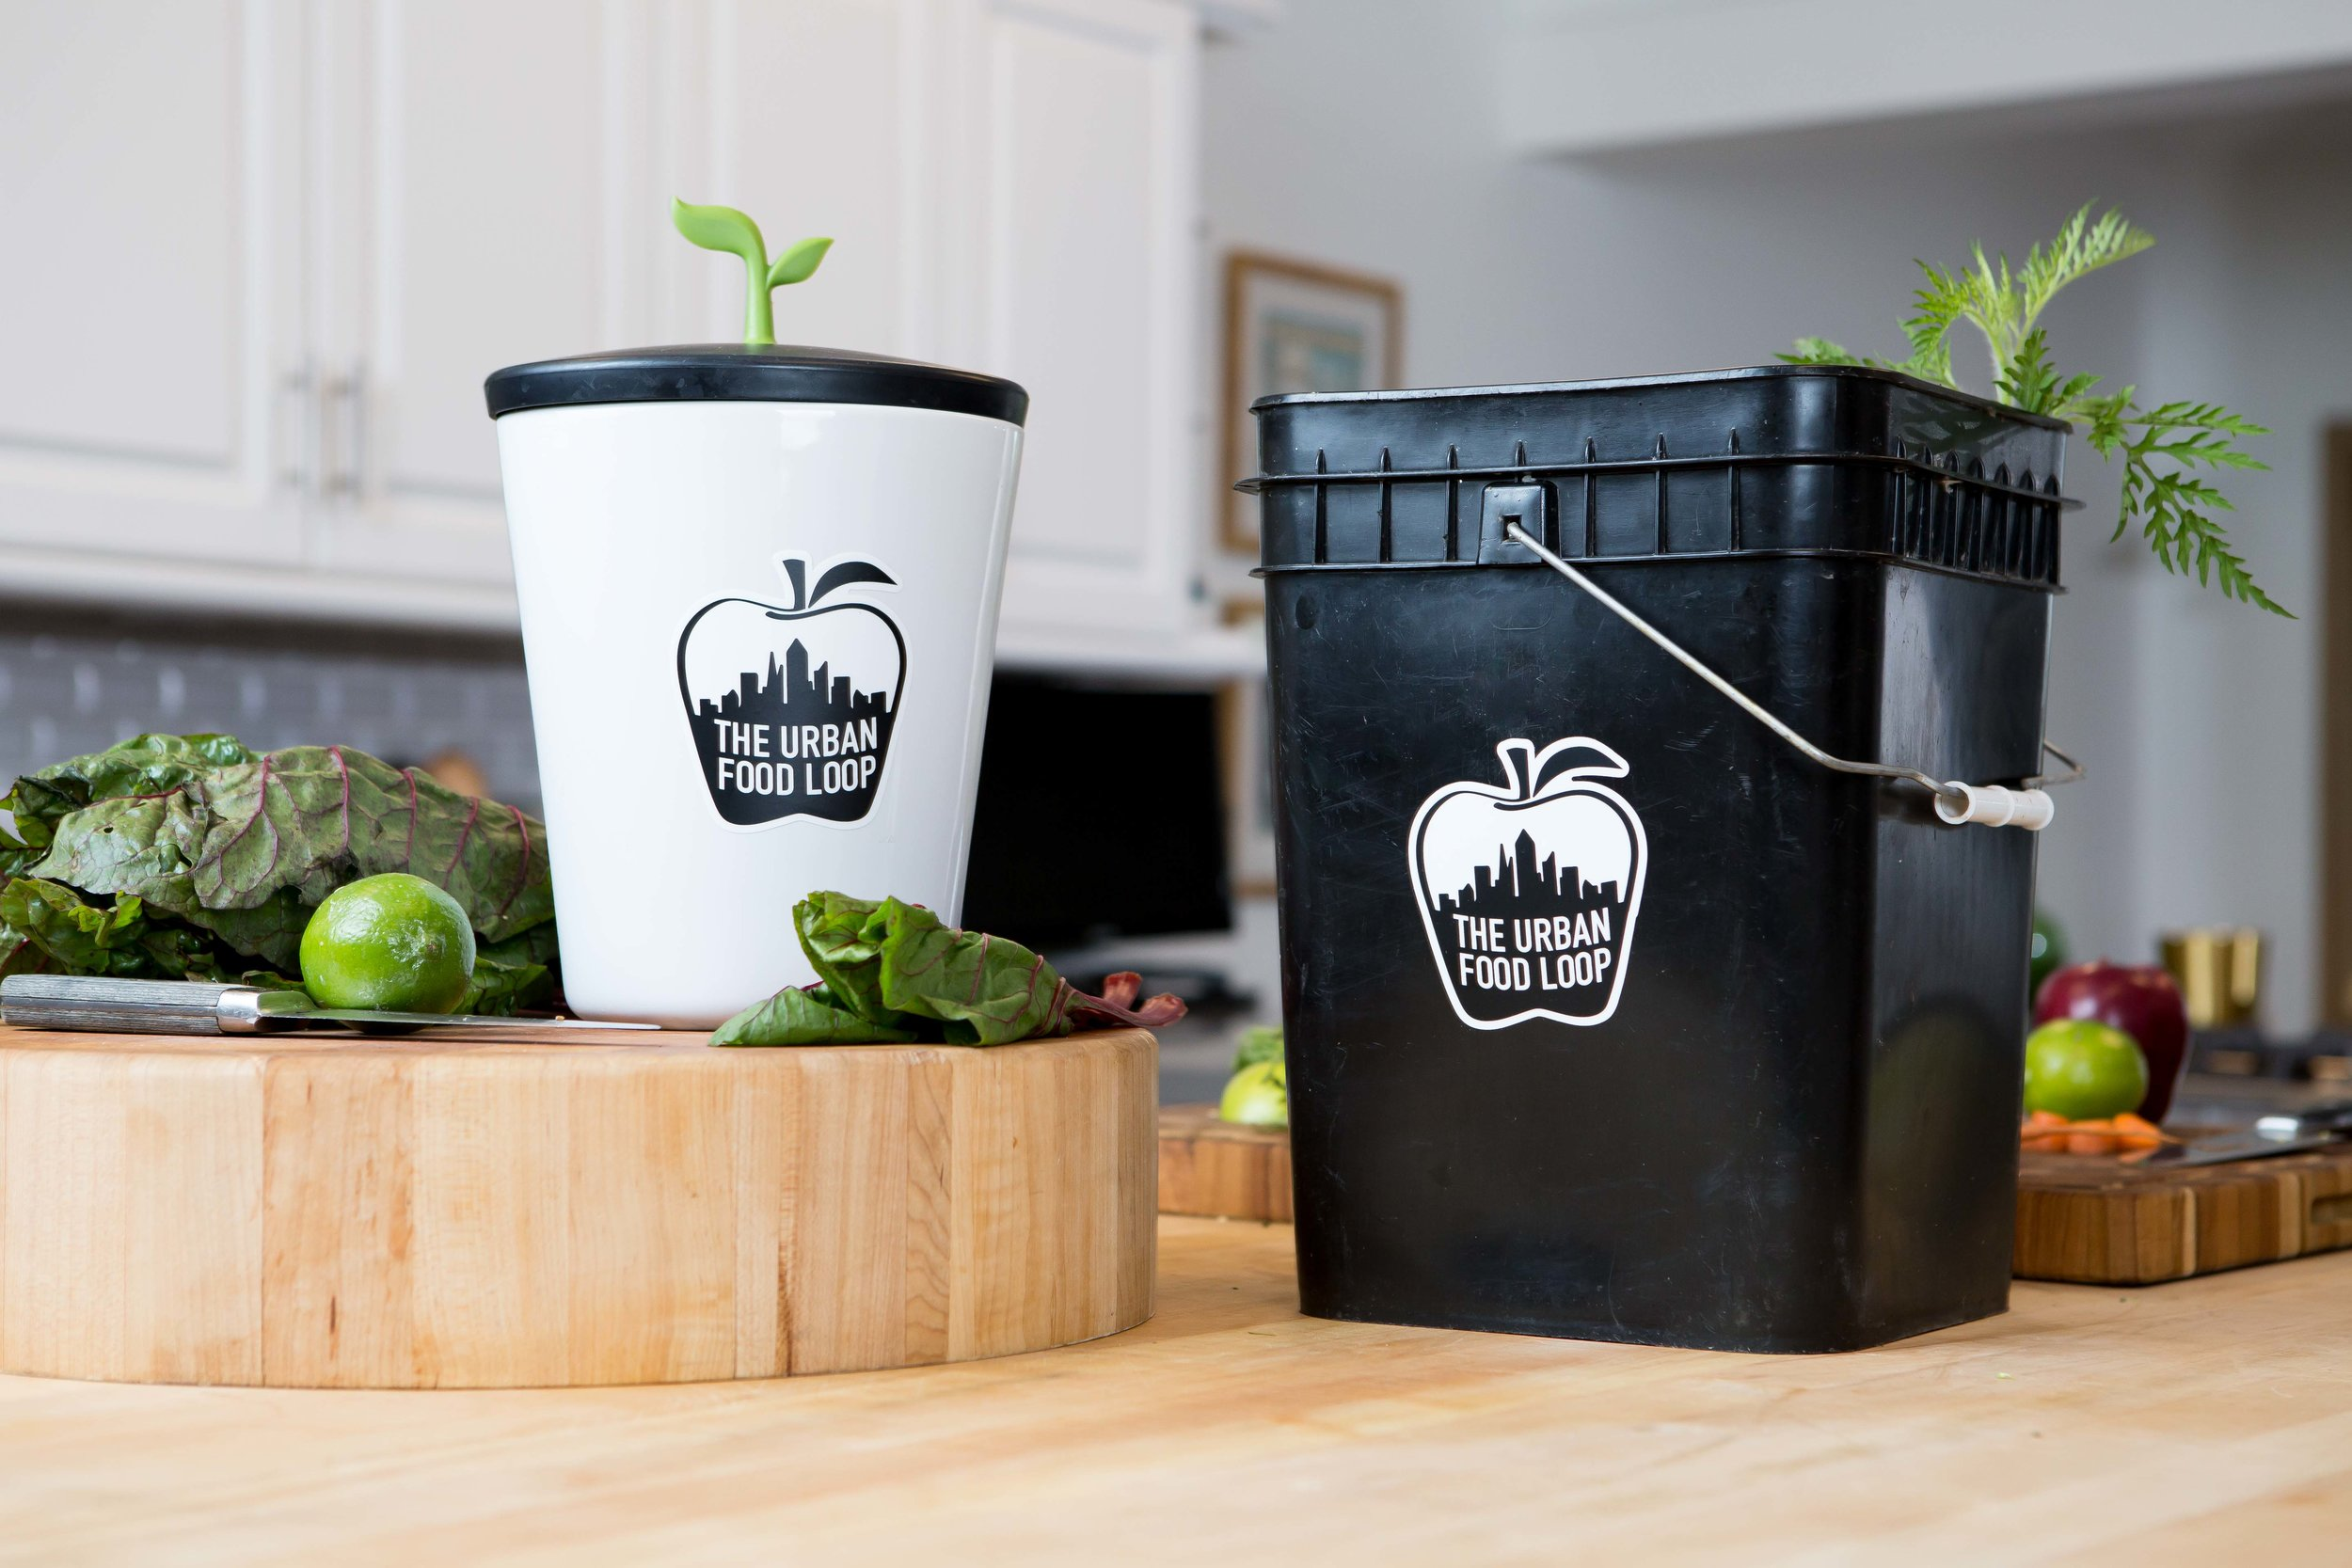 They supply you with a counter top container as well as buckets they rotate each week.